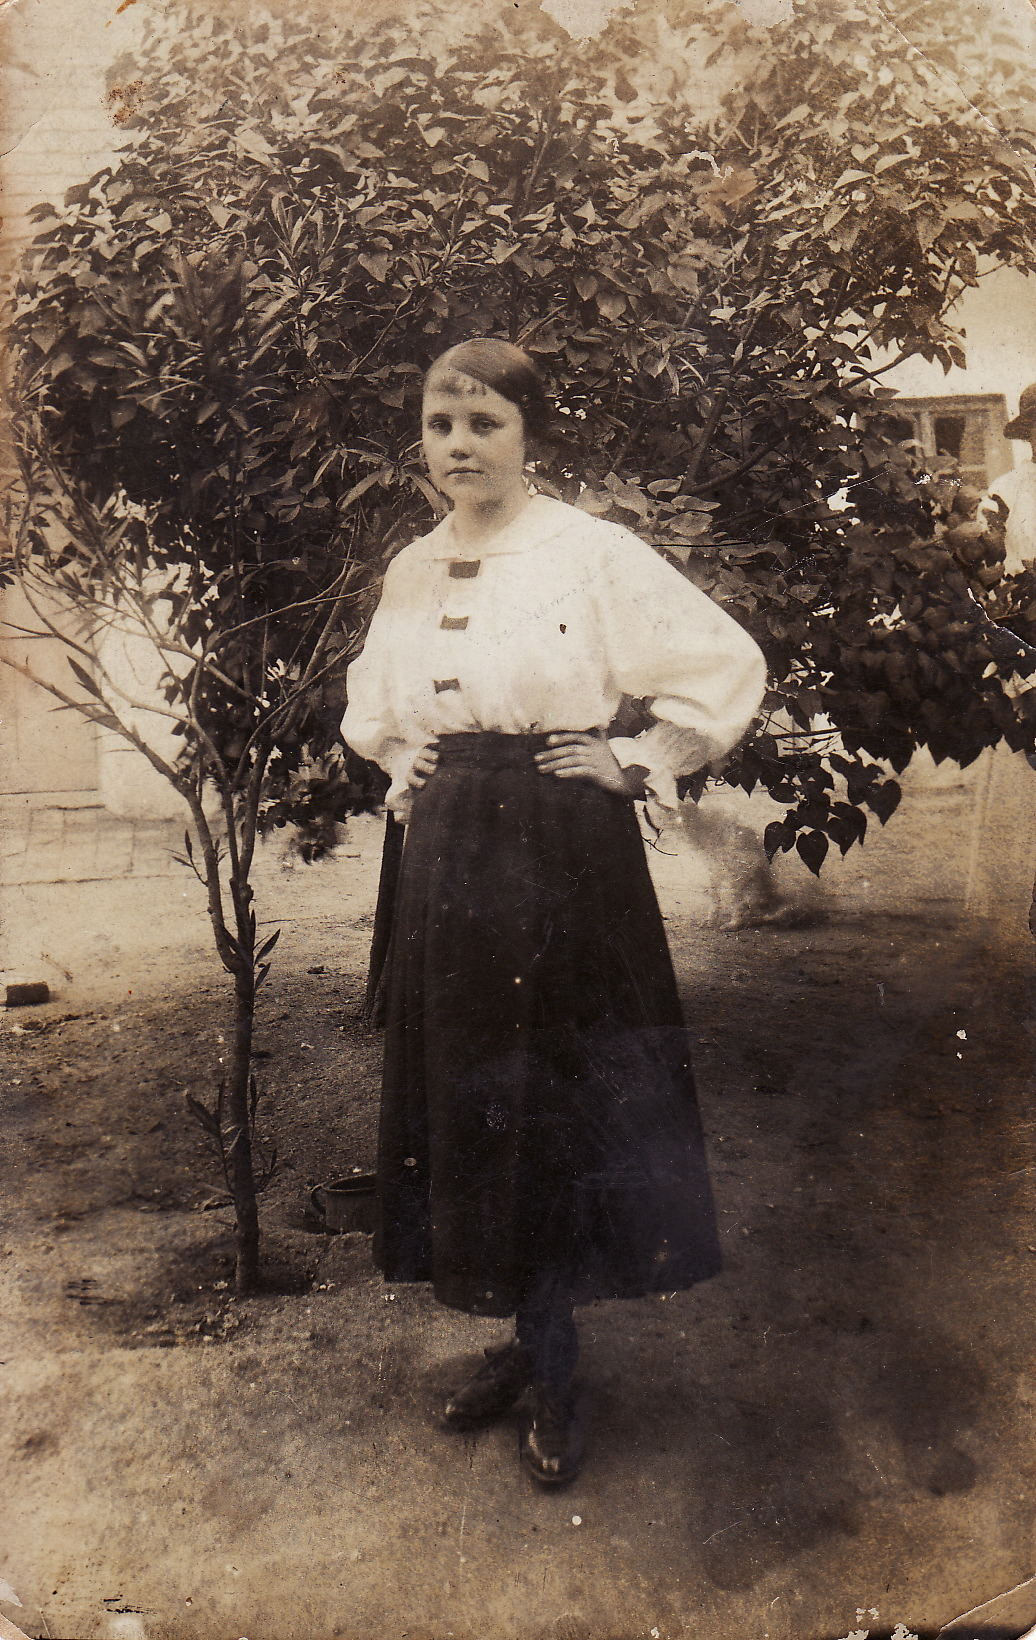 A young teenage girl wearing a white blouse and dark skirt and standing in front of a small tree. The photo is from the 1910s